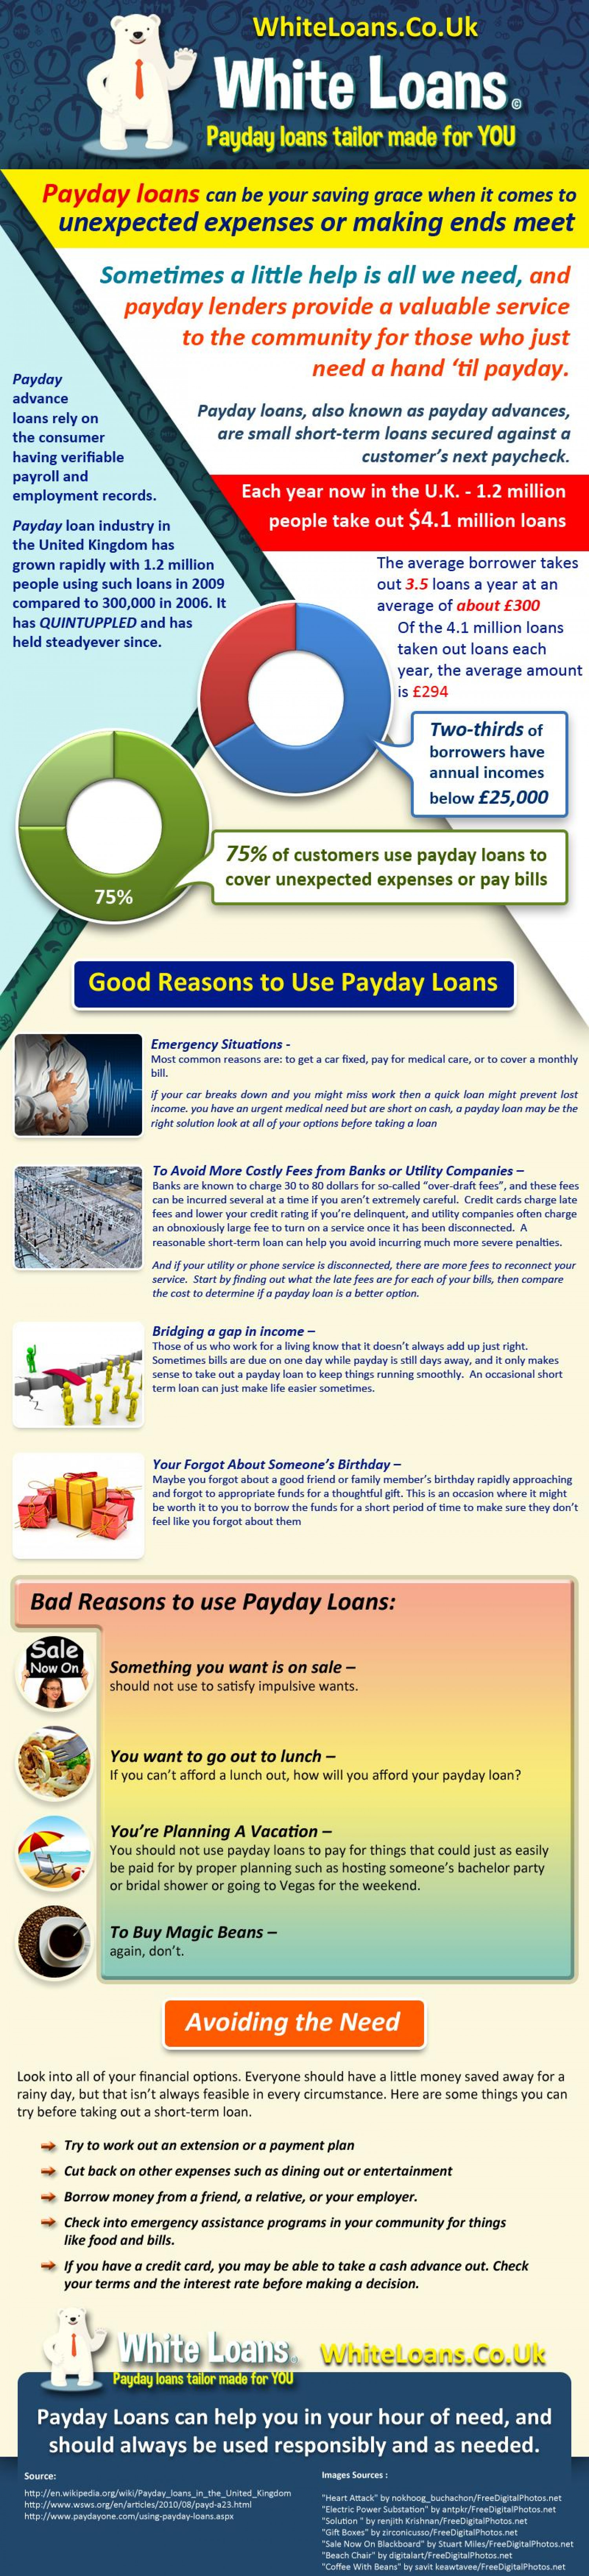 Payday Loans Infographic